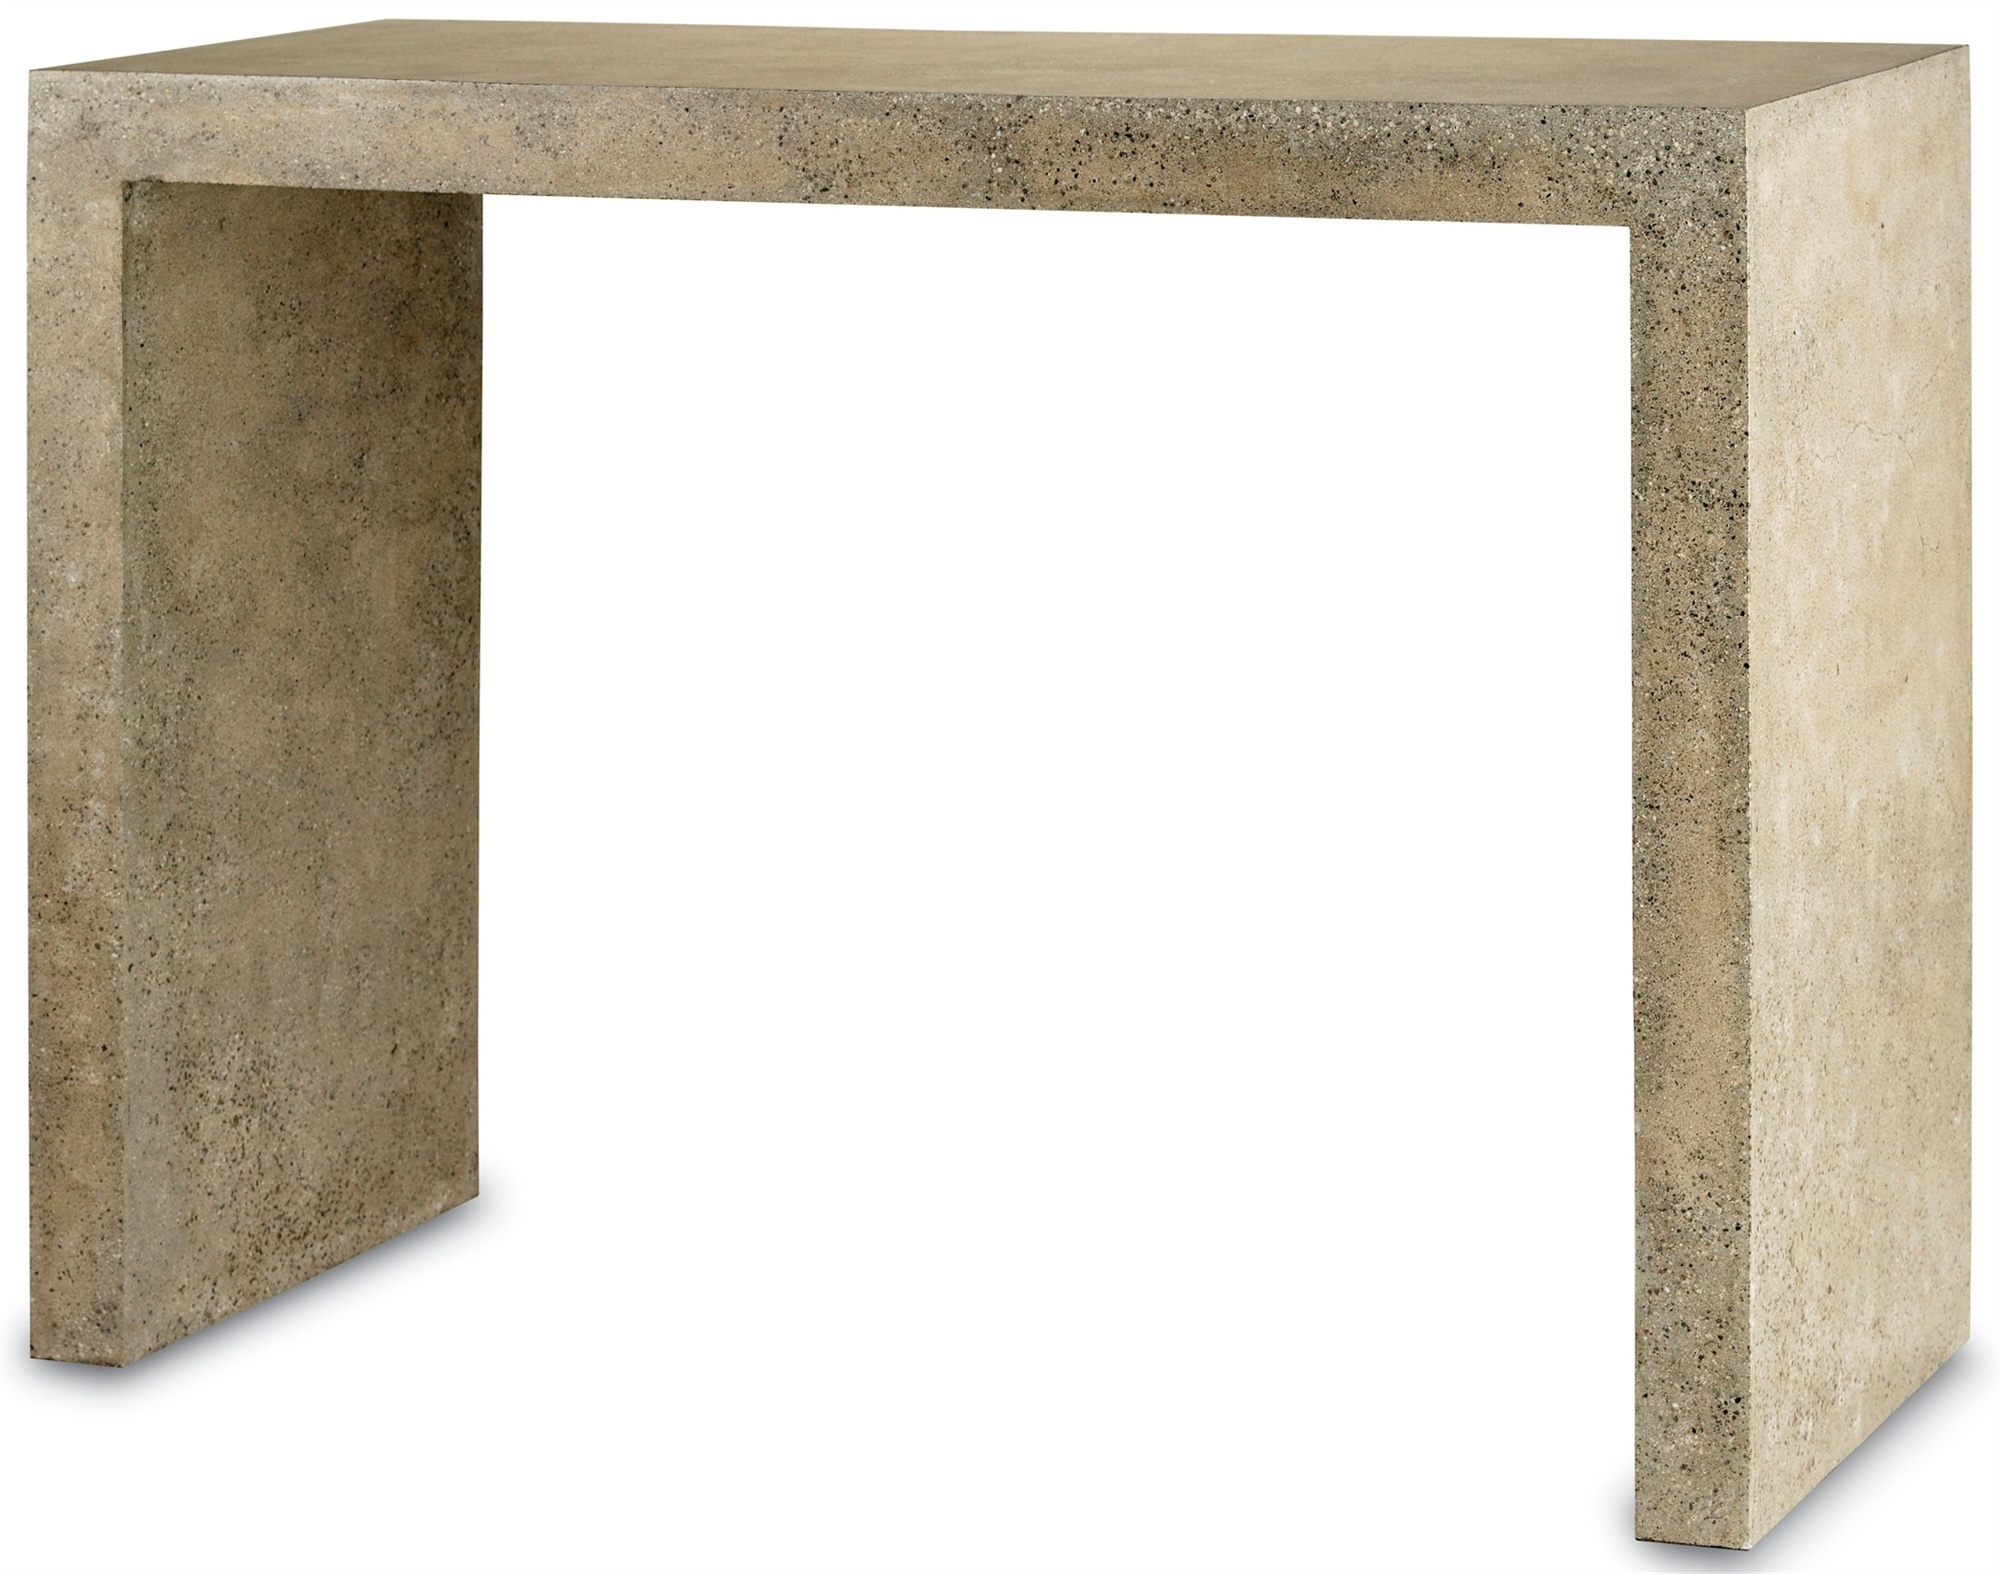 harewood faux bois console accent table currey and company outdoor concrete lounge room soccer game dark cherry wood end tables inch furniture legs marble top coffee breakfast bar